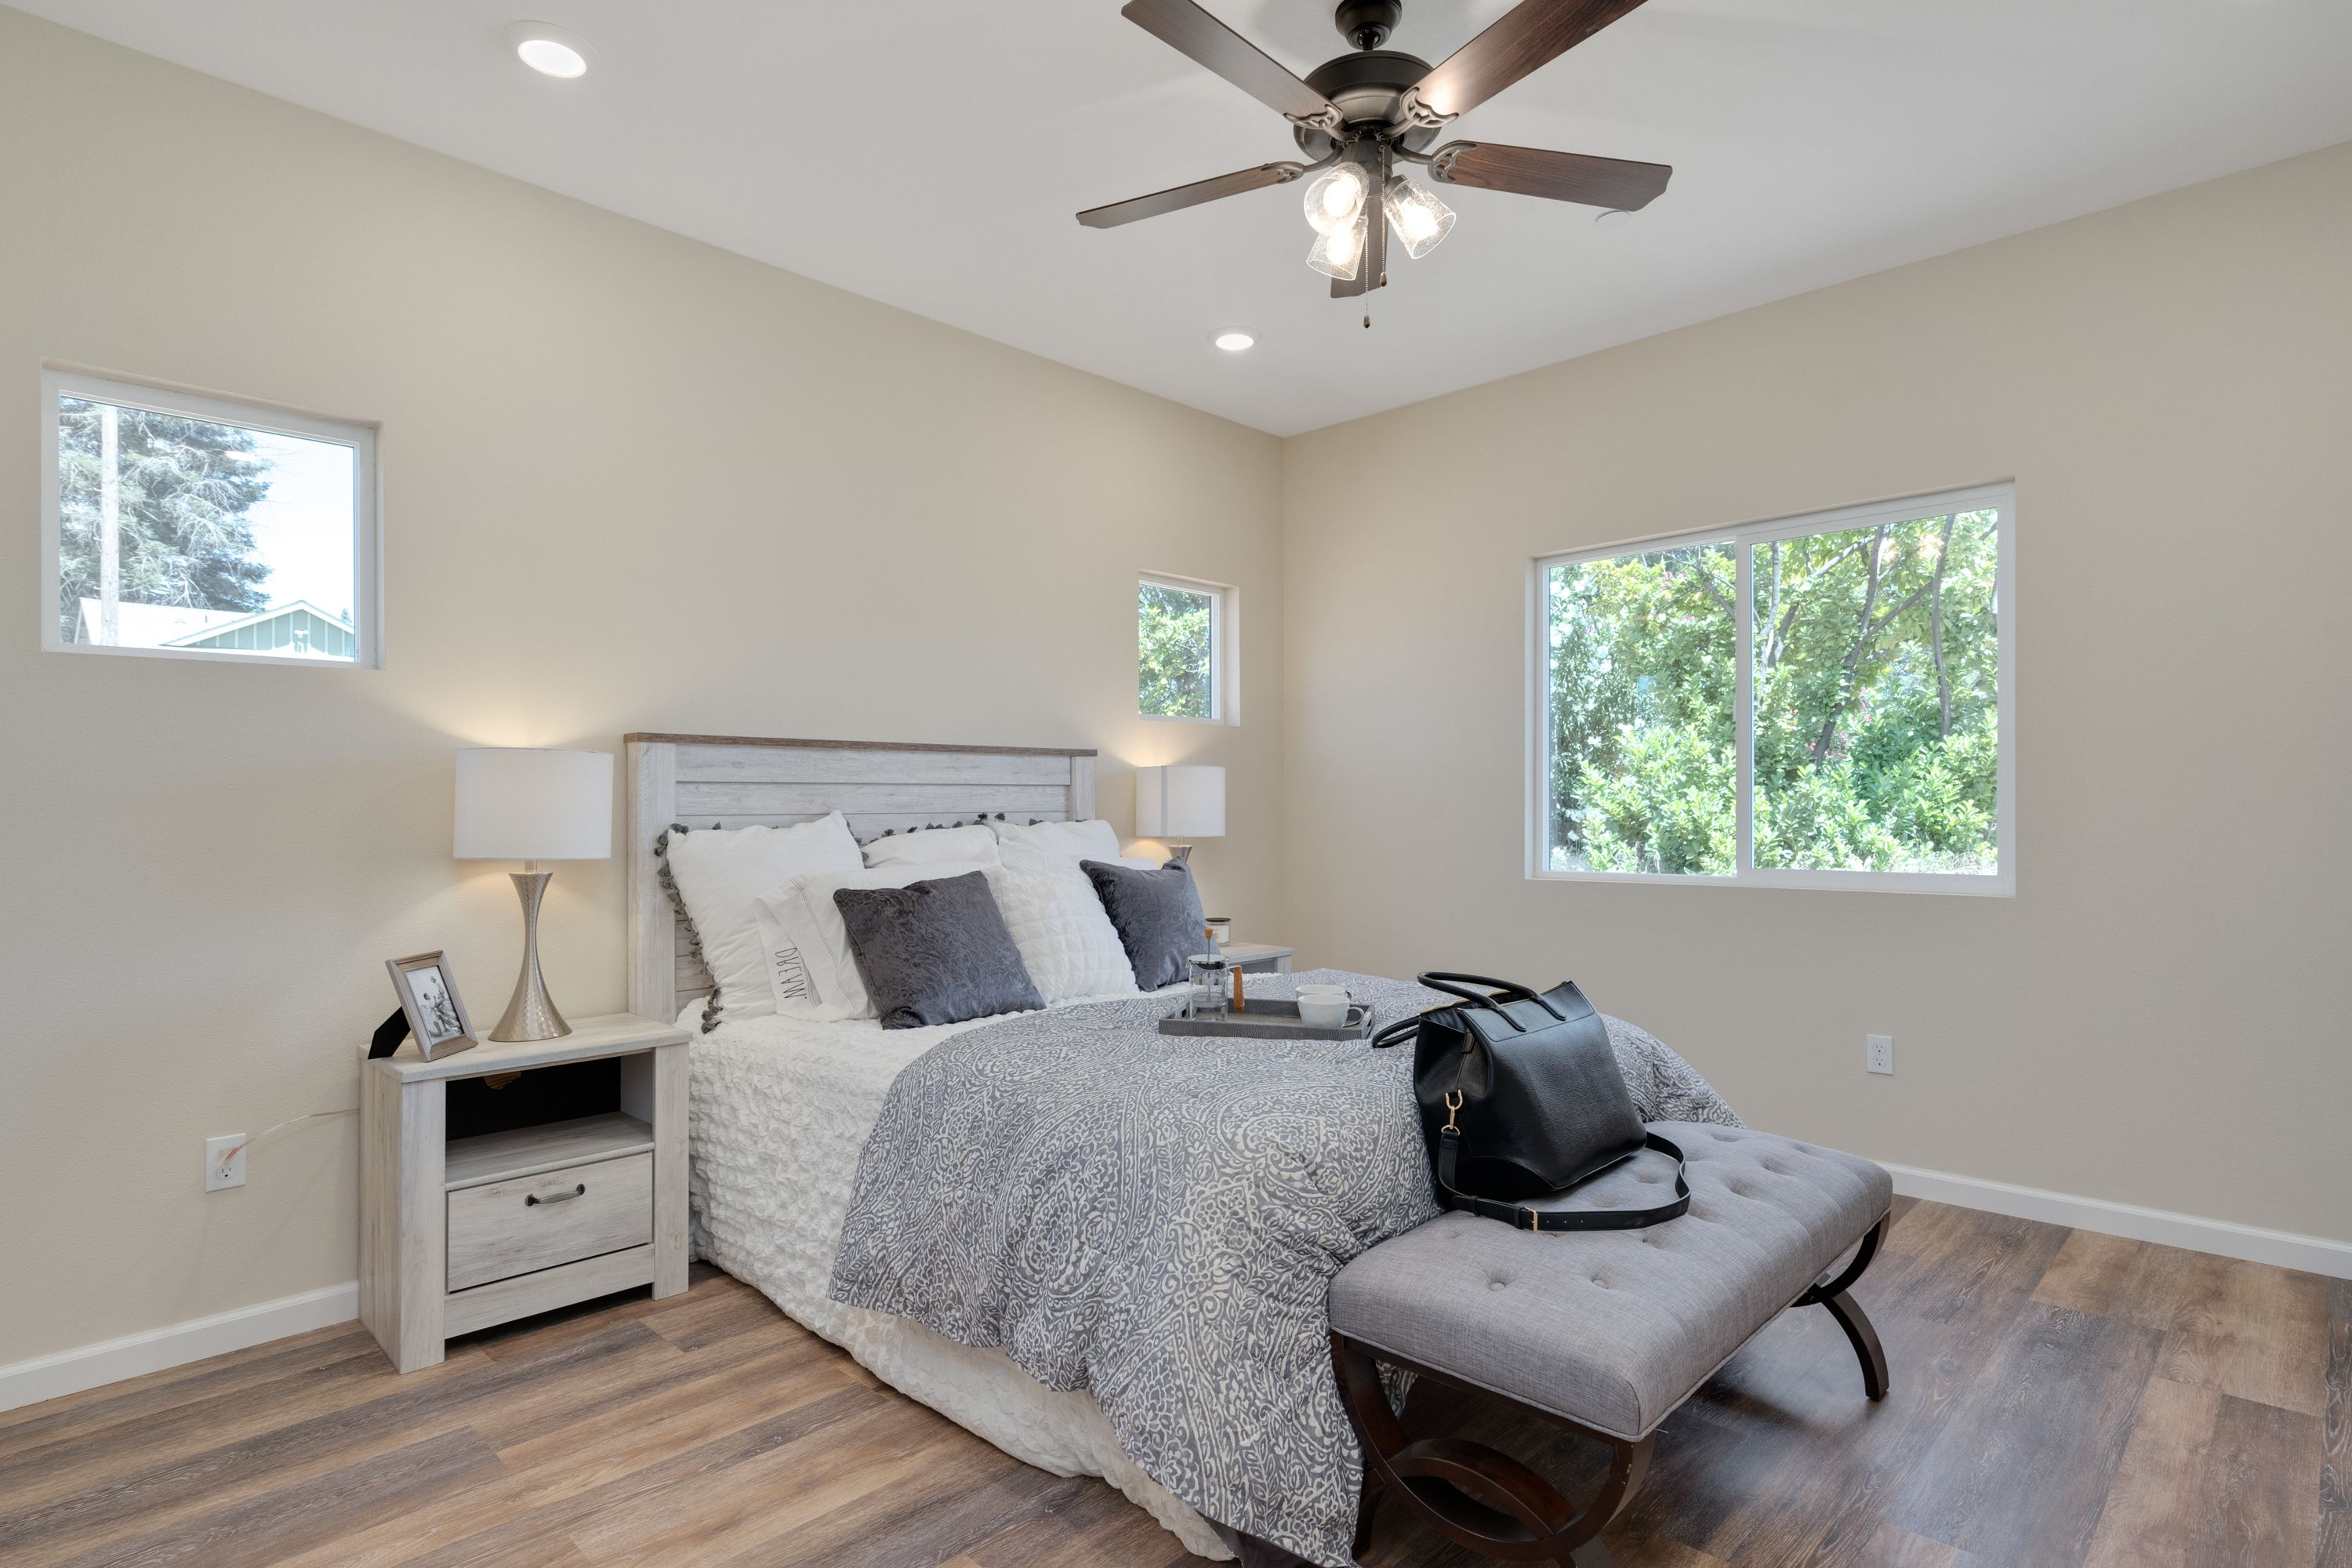 Bedroom featured in the 5870 Jaguar Ct By Silvermark Luxury Homes in Chico, CA